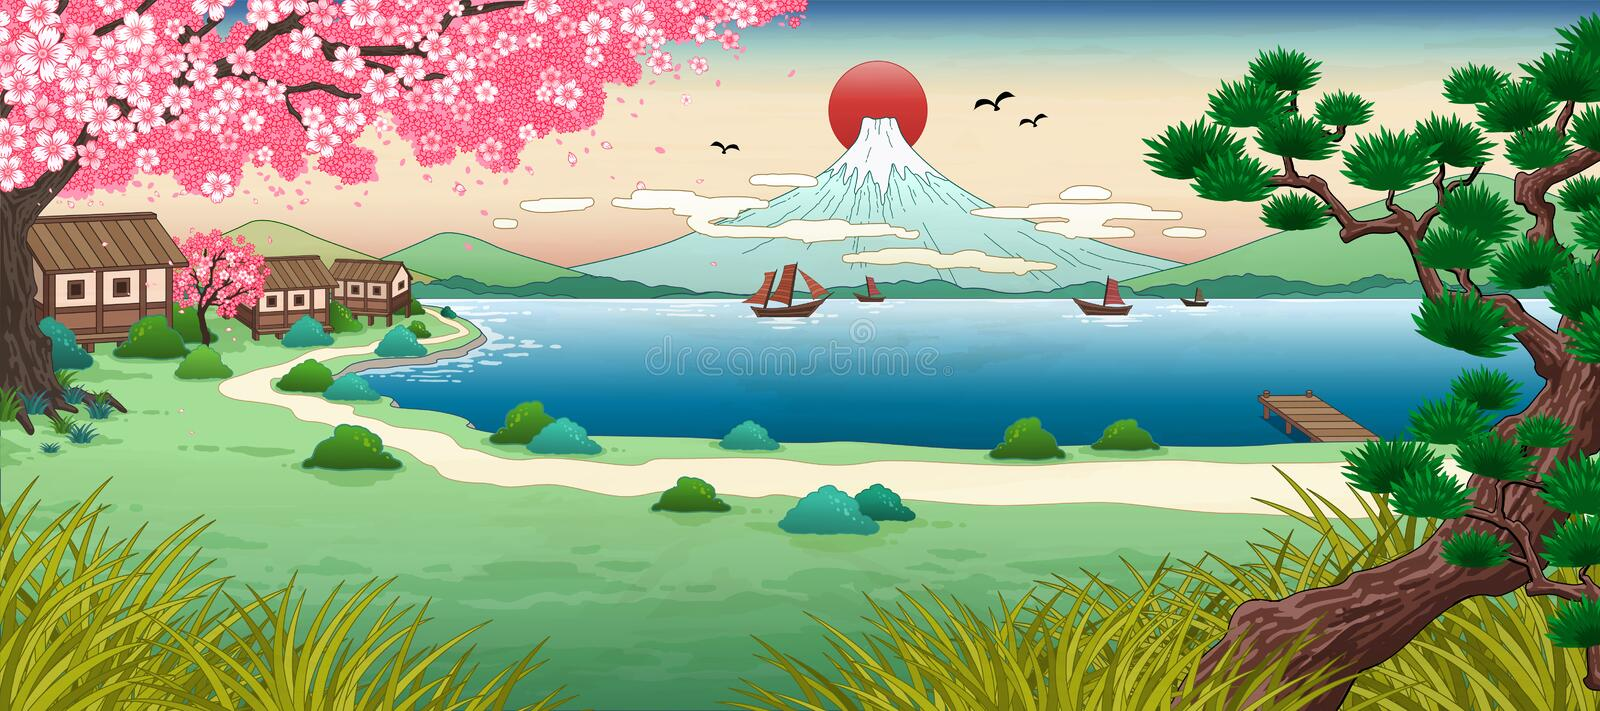 Ukiyo e fuji mountain scenery. With beautiful lake stock illustration